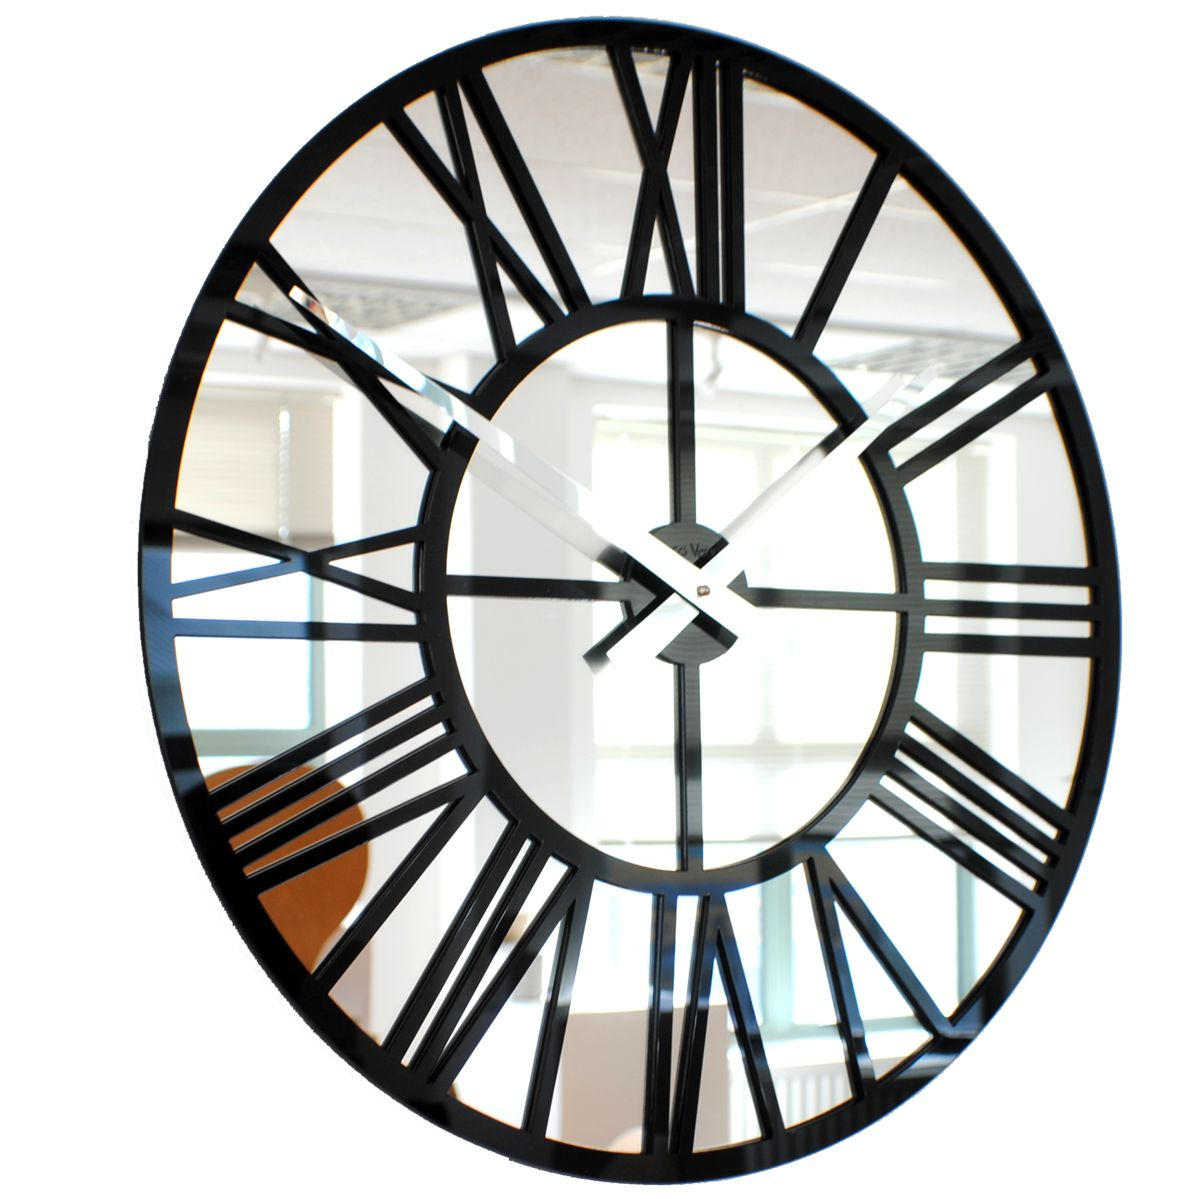 Roco Verre Acrylic Gloss Mirror Skeleton Clock  BLACK 57cm Diameter